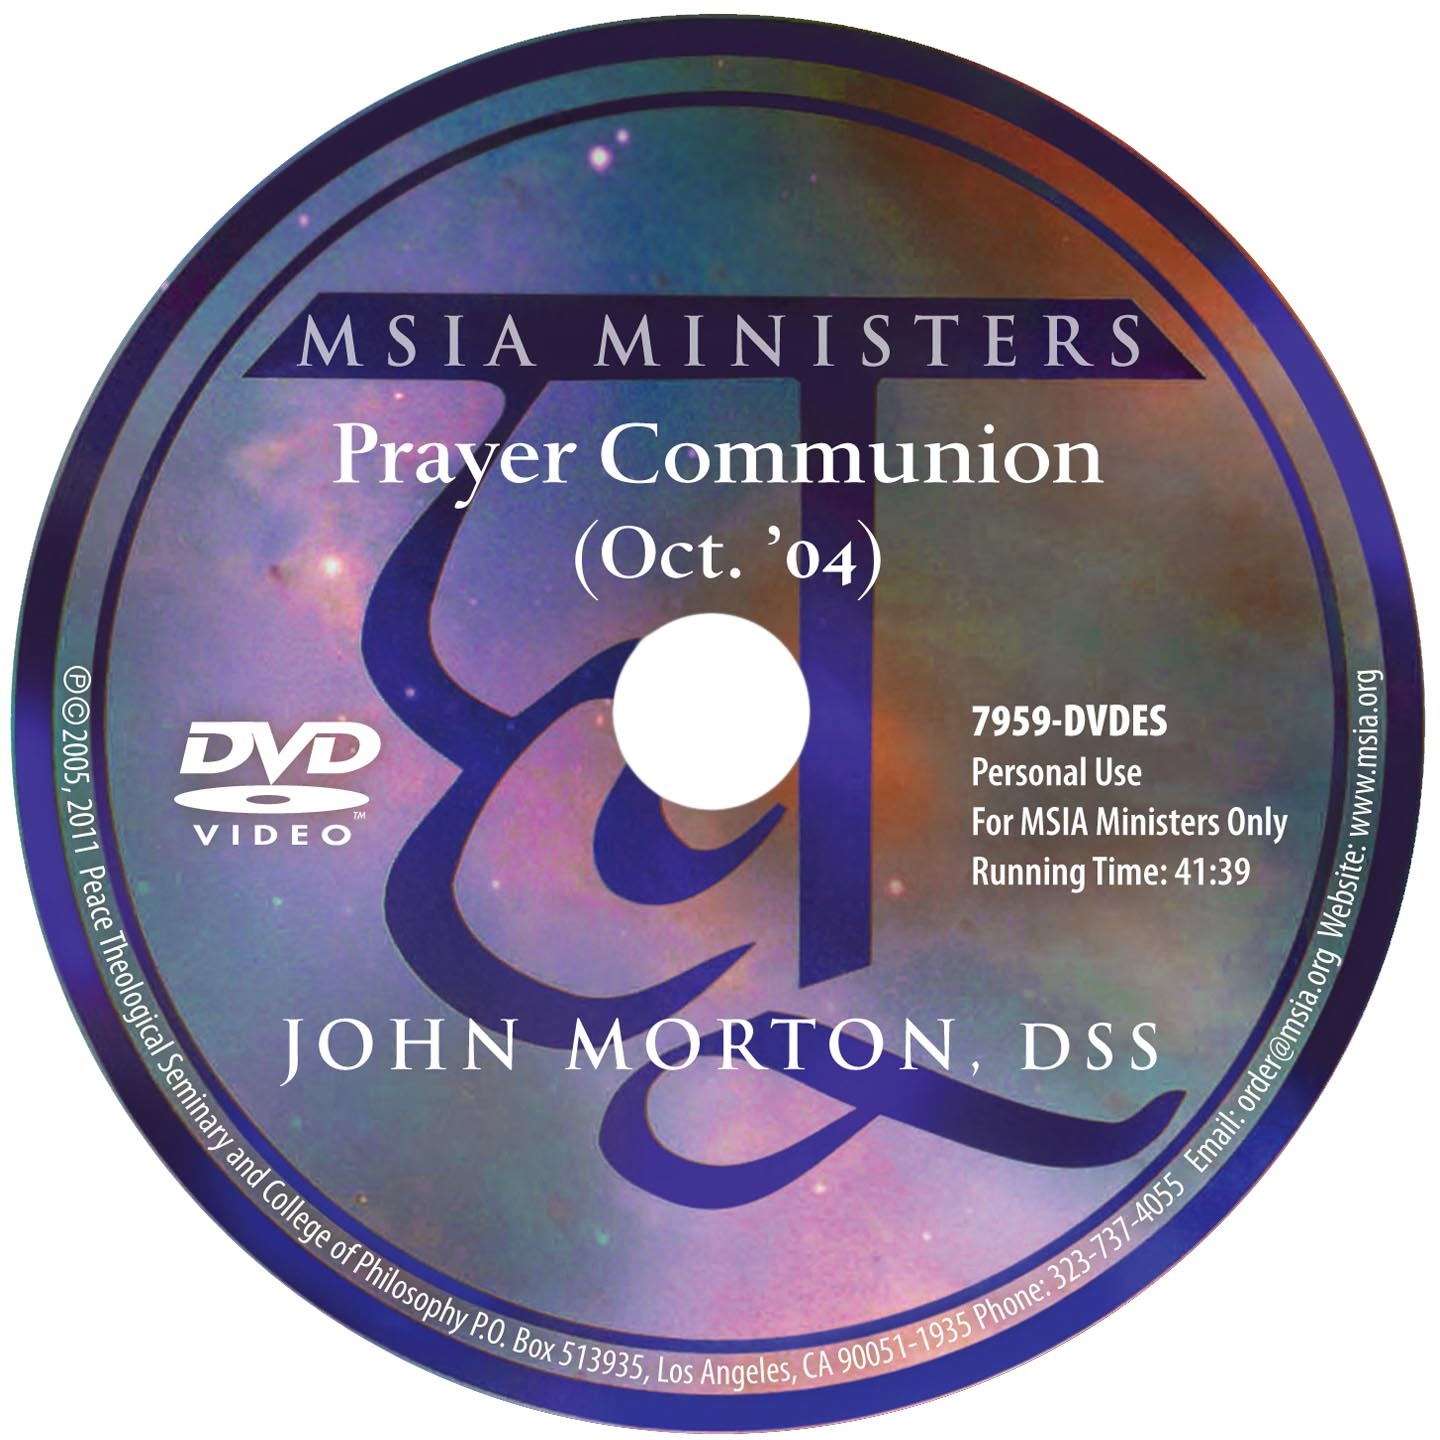 Prayer Communion For MSIA Ministers DVD